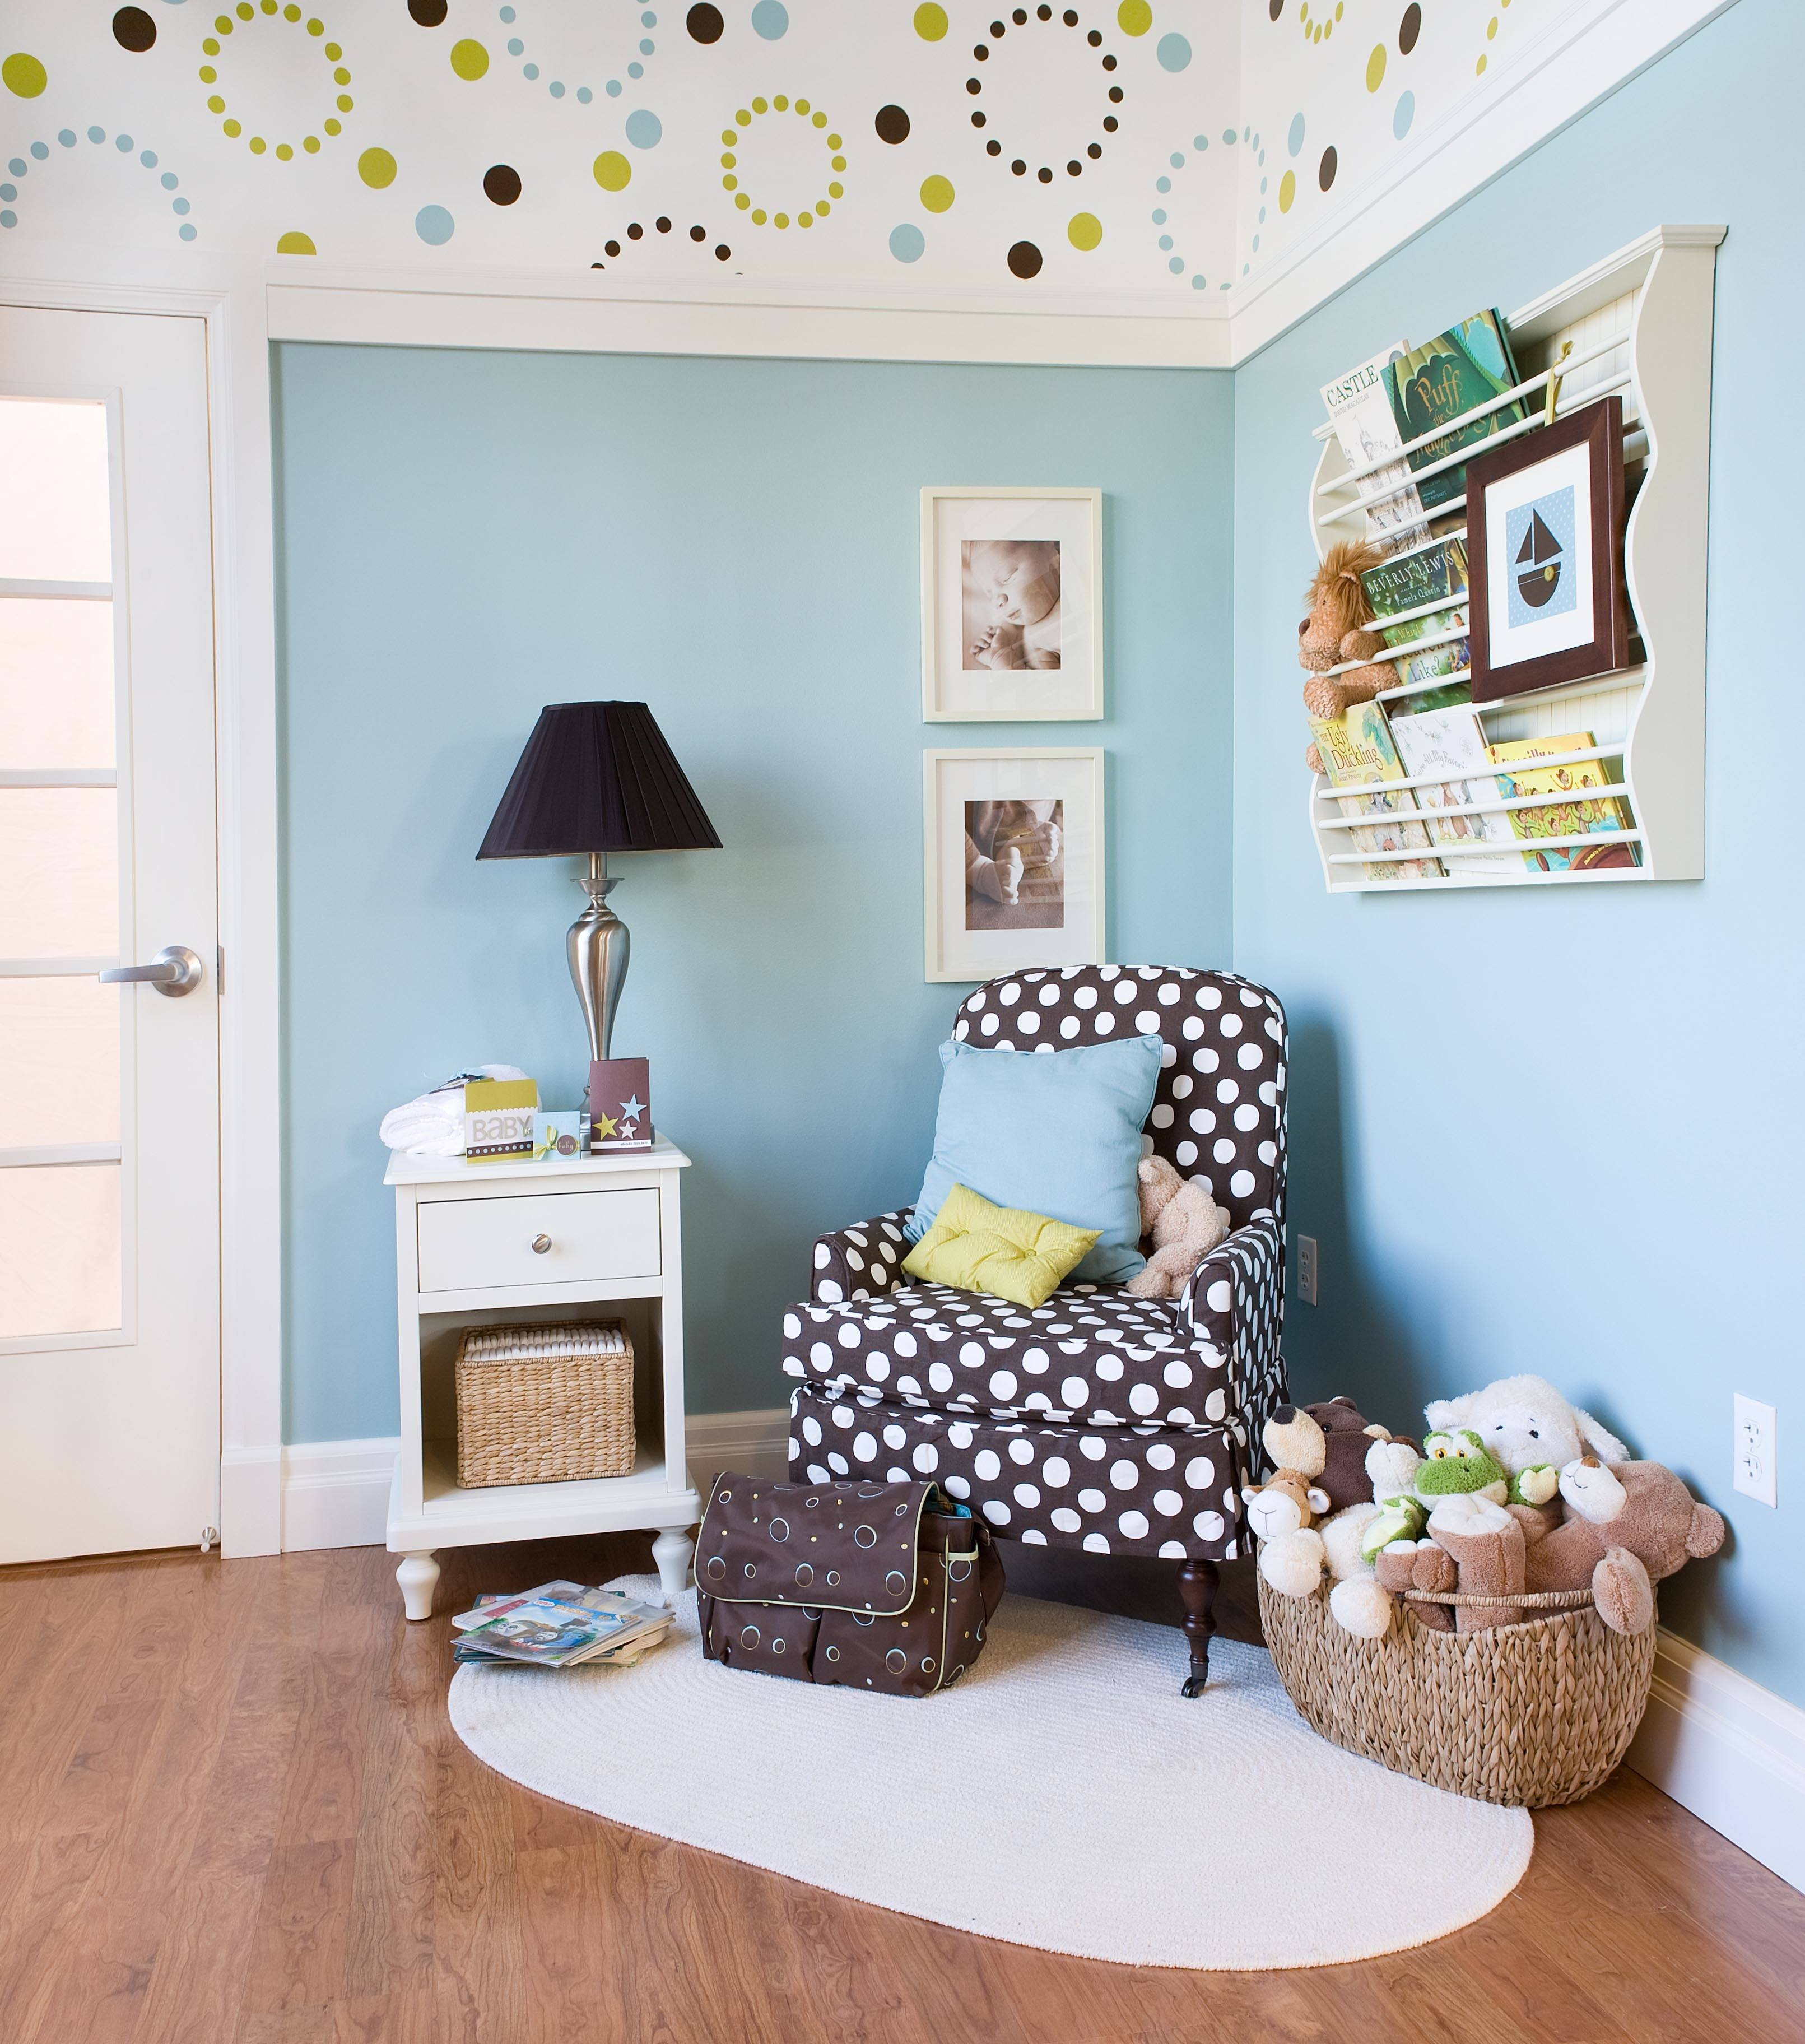 Ideas For Baby Room It 39s Spot On